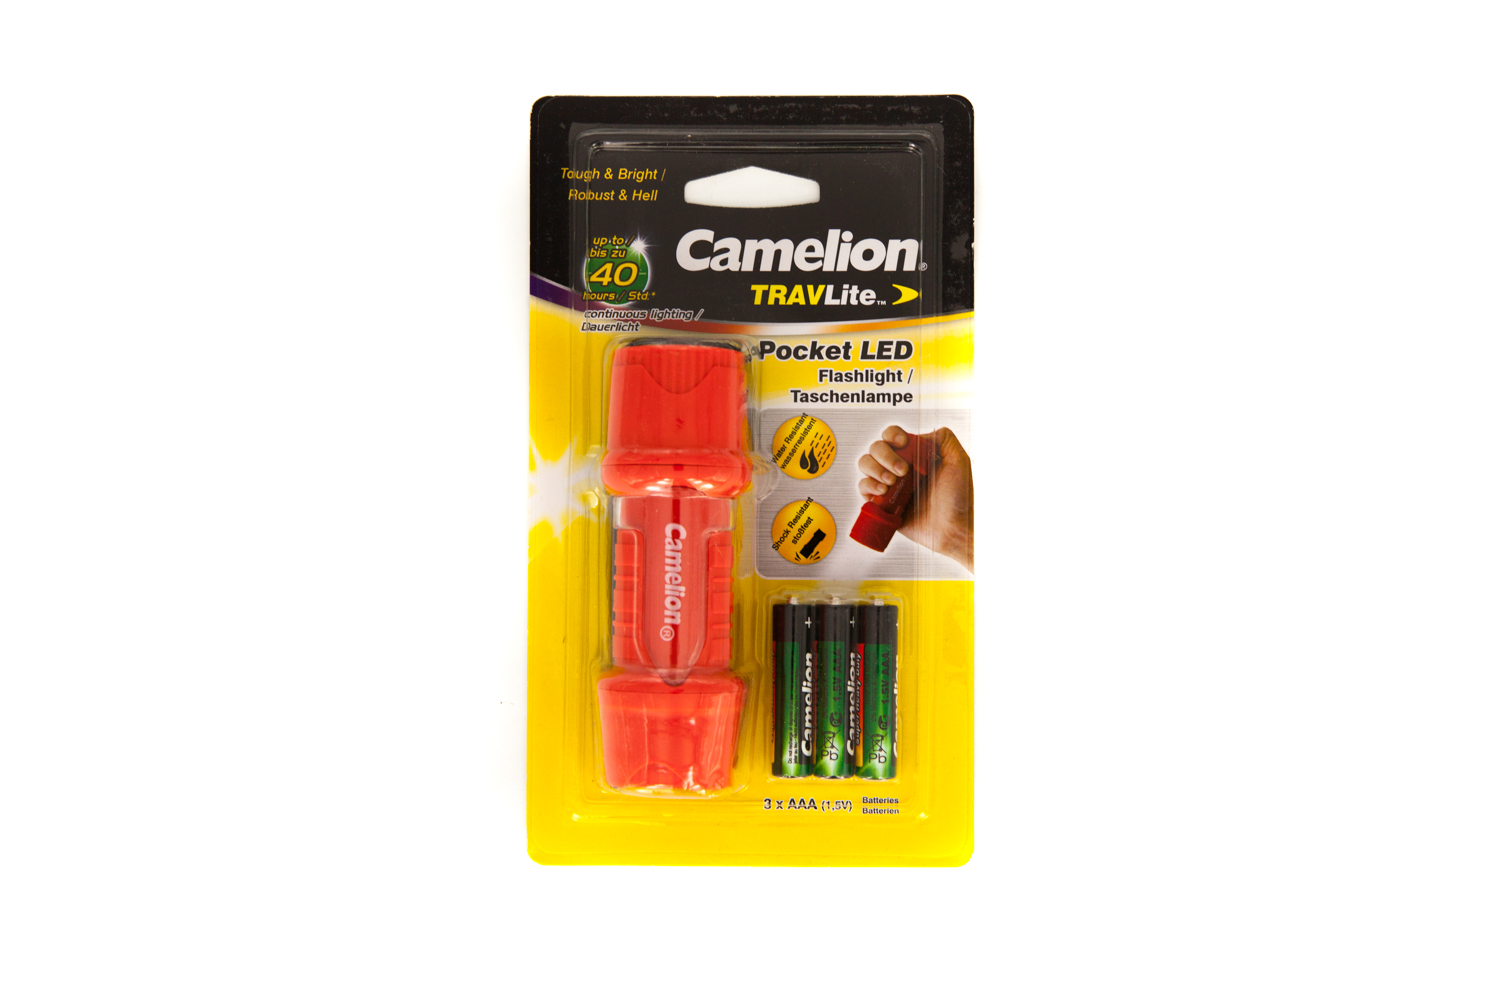 Camelion TRAVLite 1 LED